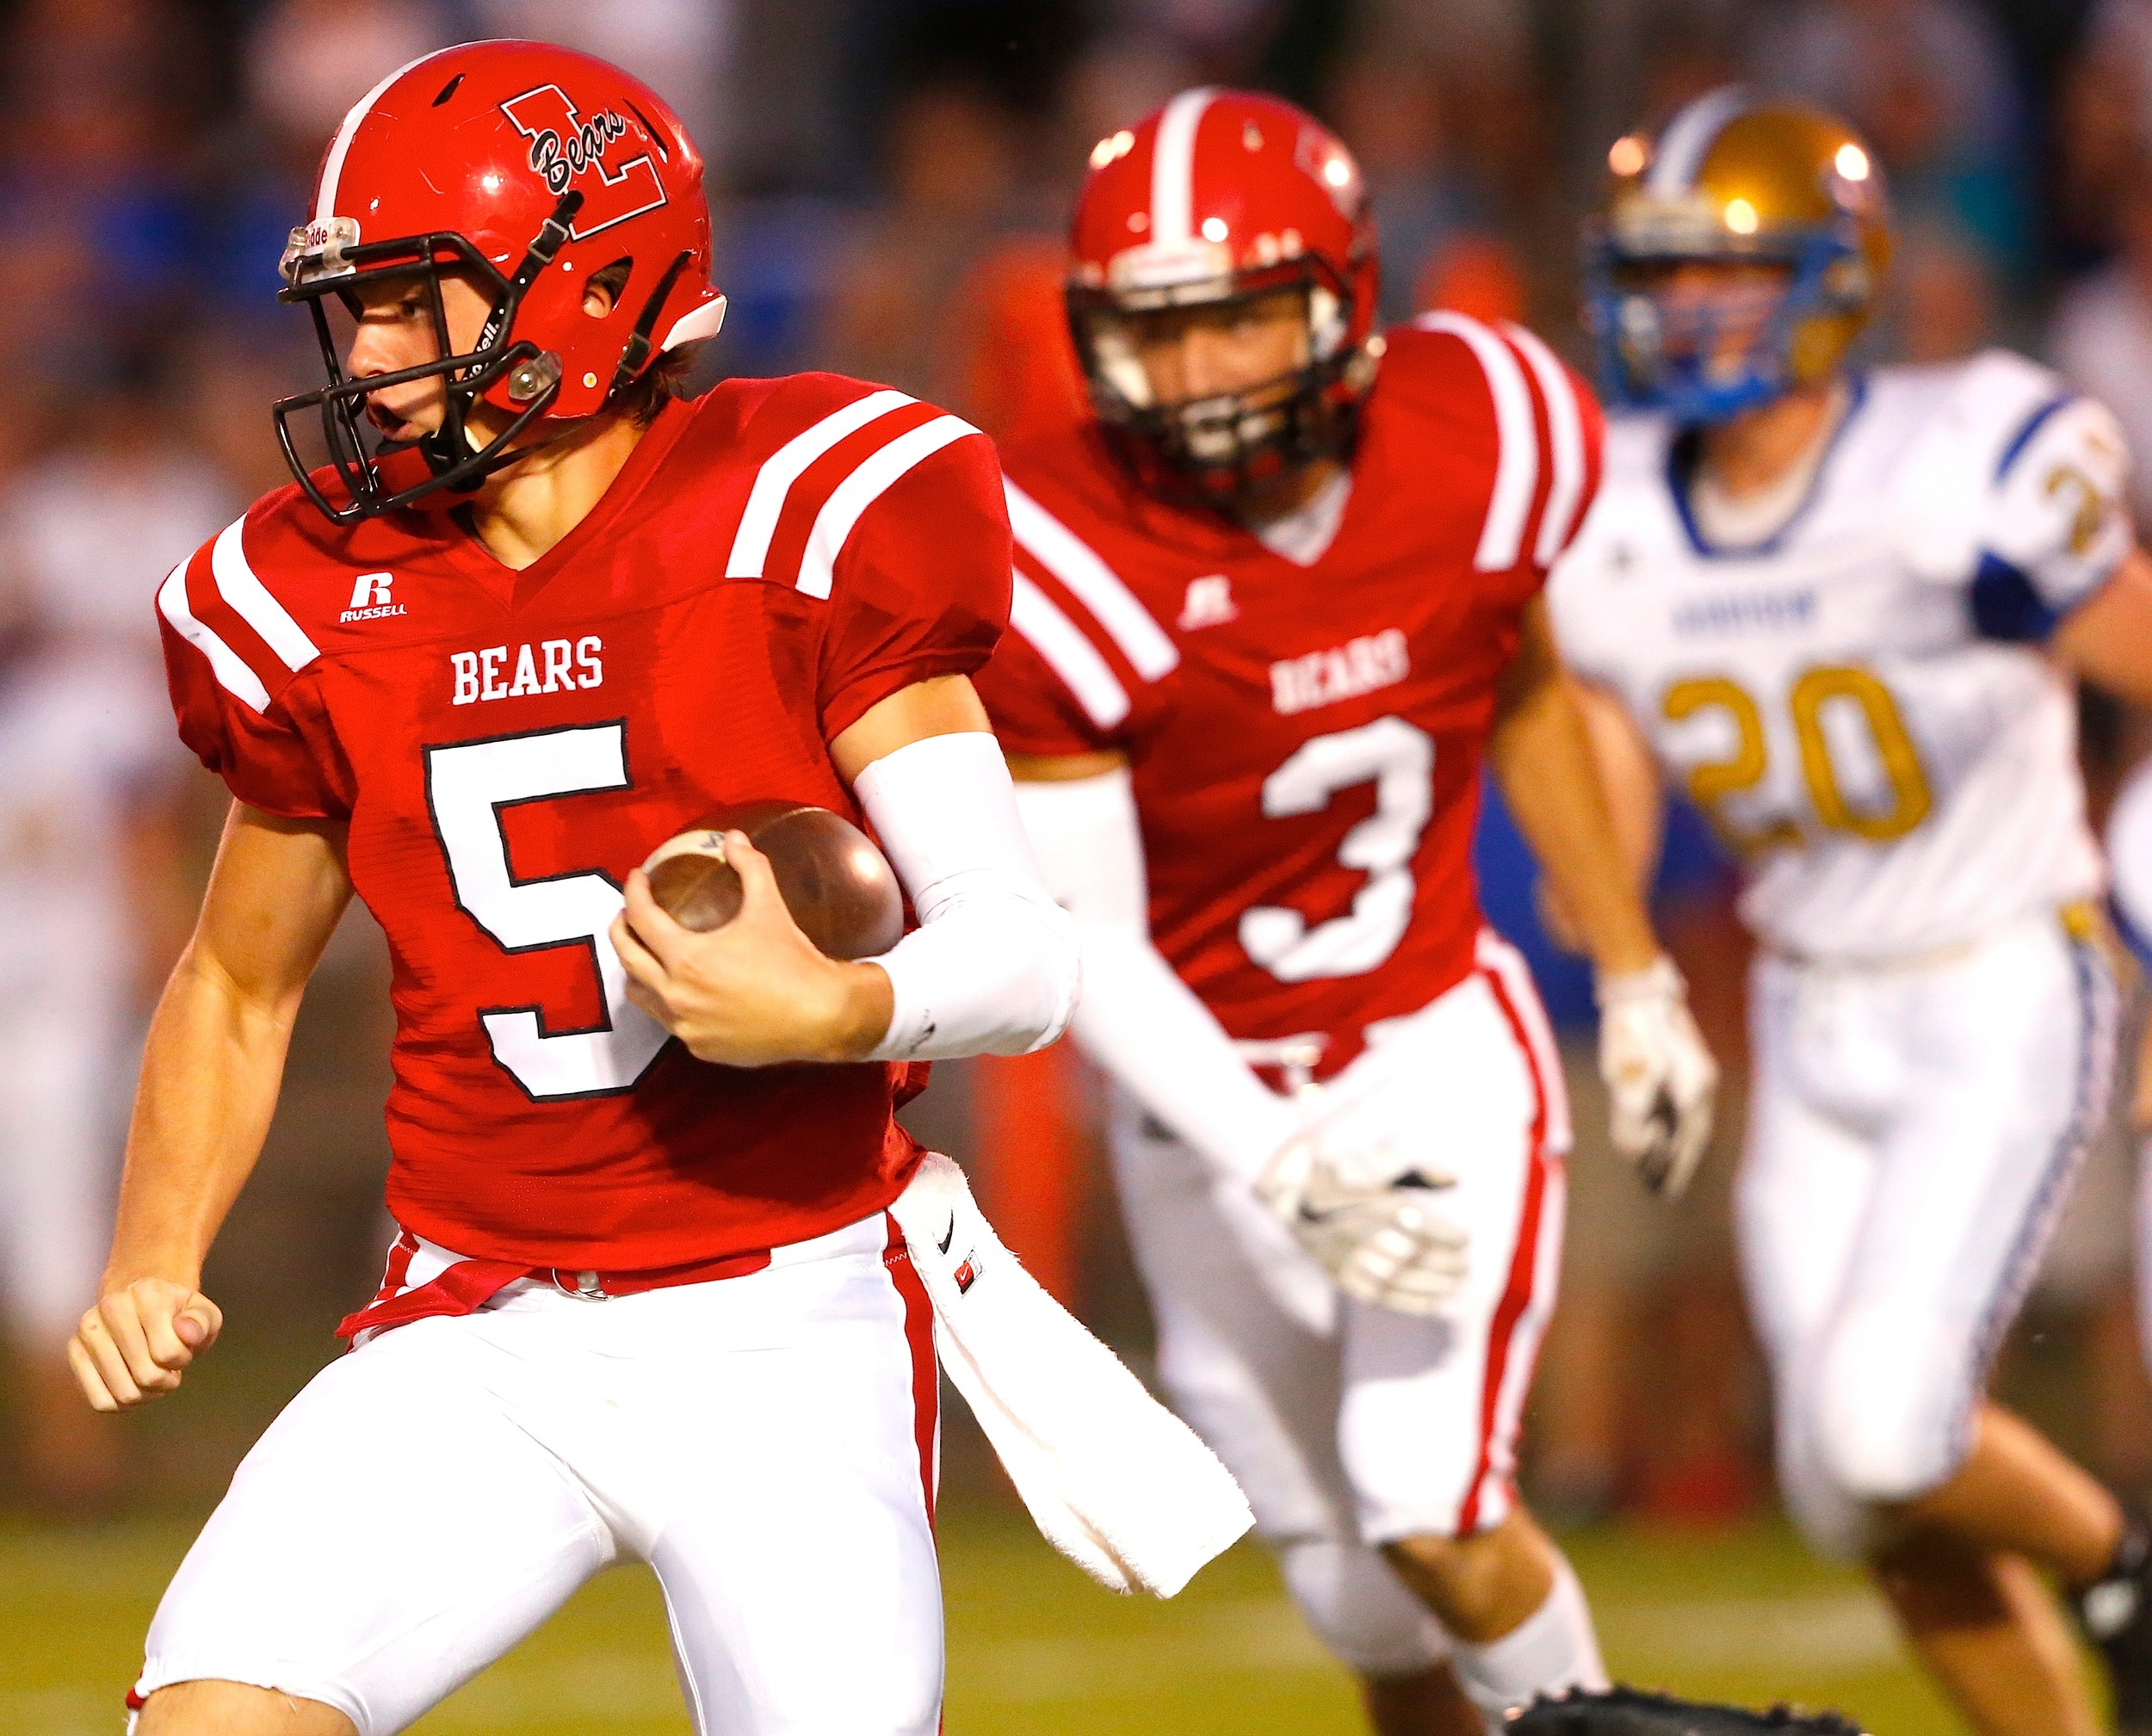 Lynn quarterback Noah Jackson (5) runs with Cameron Baldy (3) following in Friday's 21-18 win over No. 5 Addison at David Posey Memorial Stadium. Addison had won 14 straight regular-season games before Friday's loss.